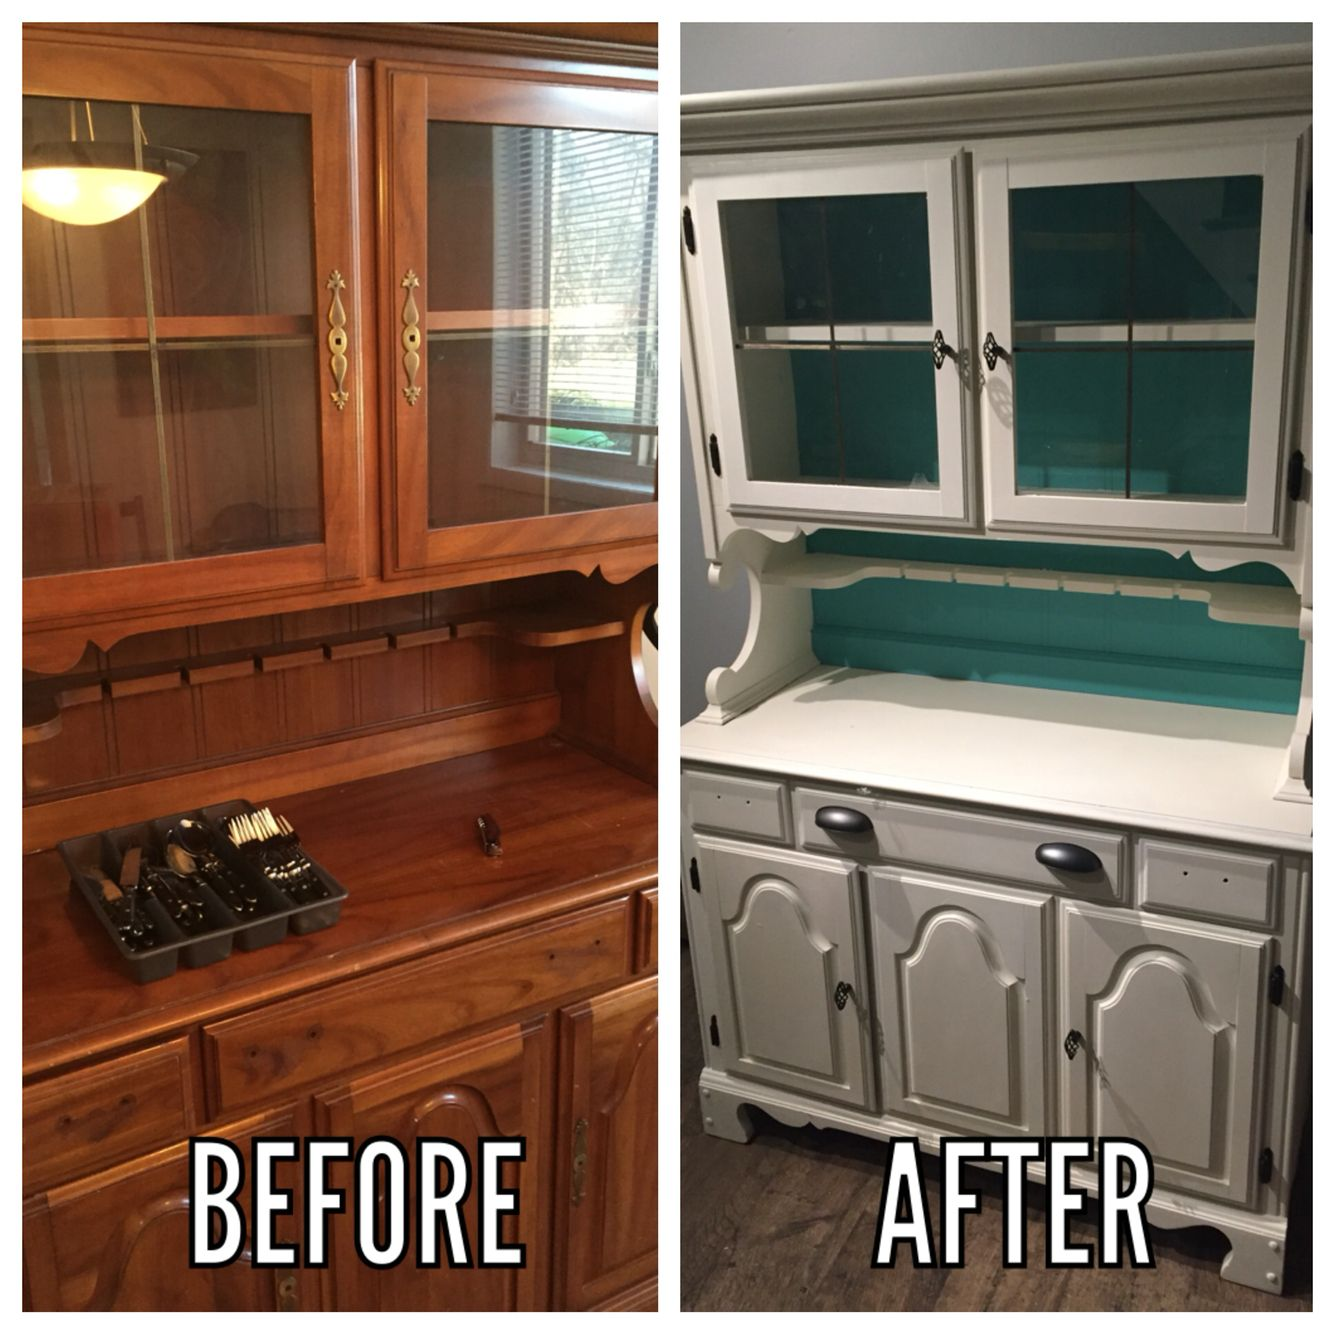 Purchase annie sloan chalk paint - My Great Grandmothers China Cabinet Before And After Annie Sloan Chalk Paint Buy Annie Sloan